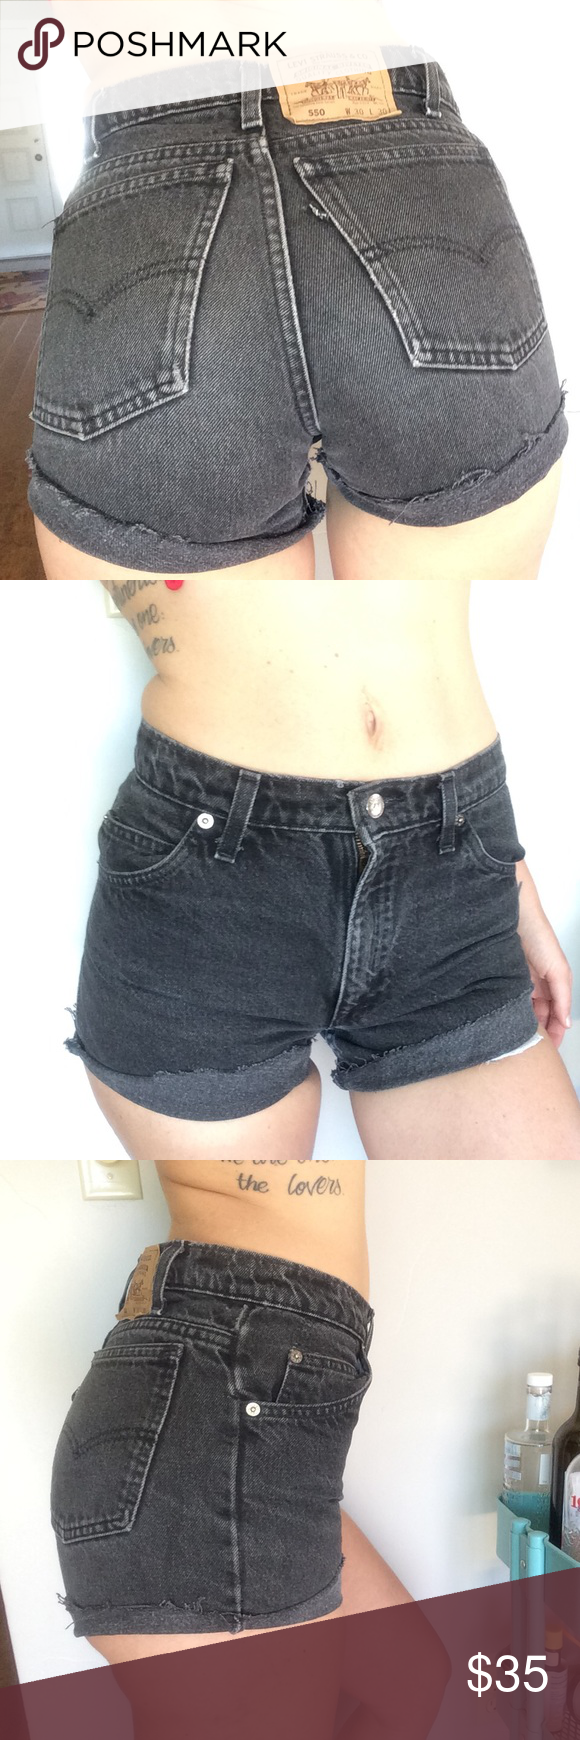 "🍑 cheeky Levi's cutoffs Super cute 100% cotton made in USA Levi's cutoffs in faded black denim.  So cute on, a cheeky diagonal cute, v flattering to the booty, comfy thick denim.  10.5"" rise, 14.5"" waist laying flat (29"" total) & too short/small on me @ 5'11, size 4/28 with juicier thighs and booty 😎😜 marked as 30 but like I said, runs small IMO but check measurements against your own.  Hips 18"" wide laying flat.  Leg opening 11"" inseam 2.5"" bought from a local small boutique and worn…"